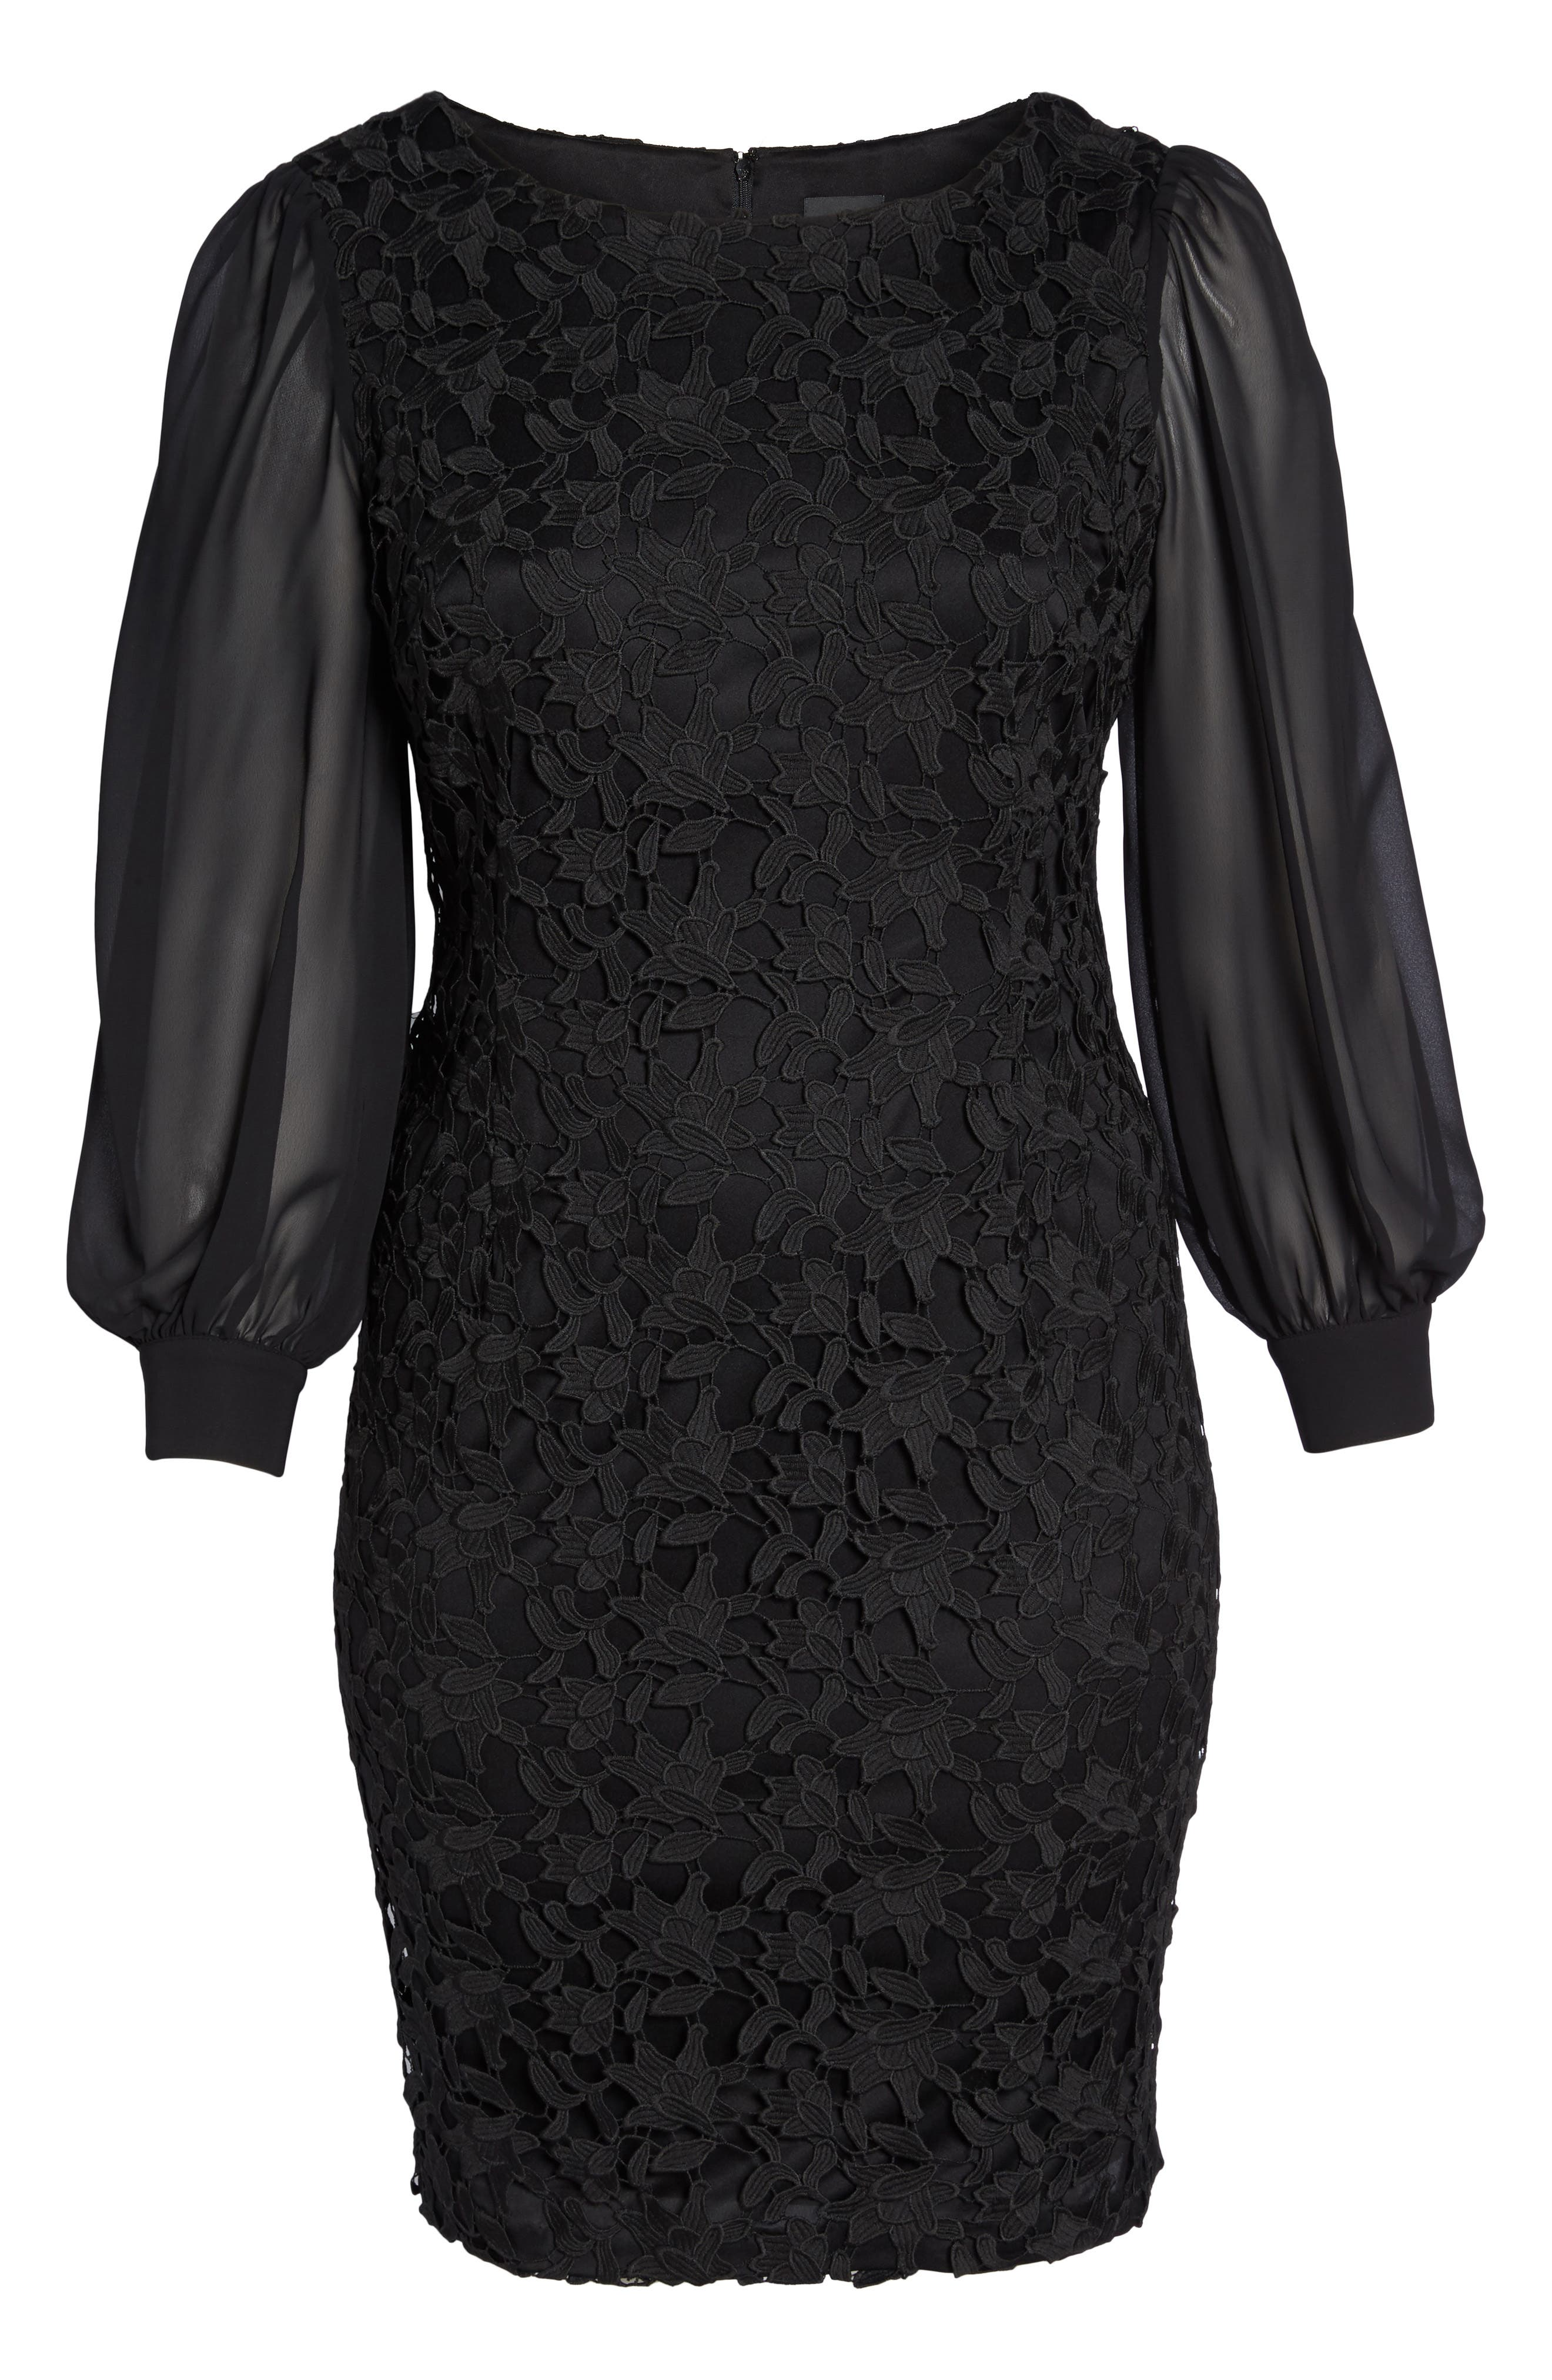 Ava Lace Sheath Dress,                             Alternate thumbnail 6, color,                             Black